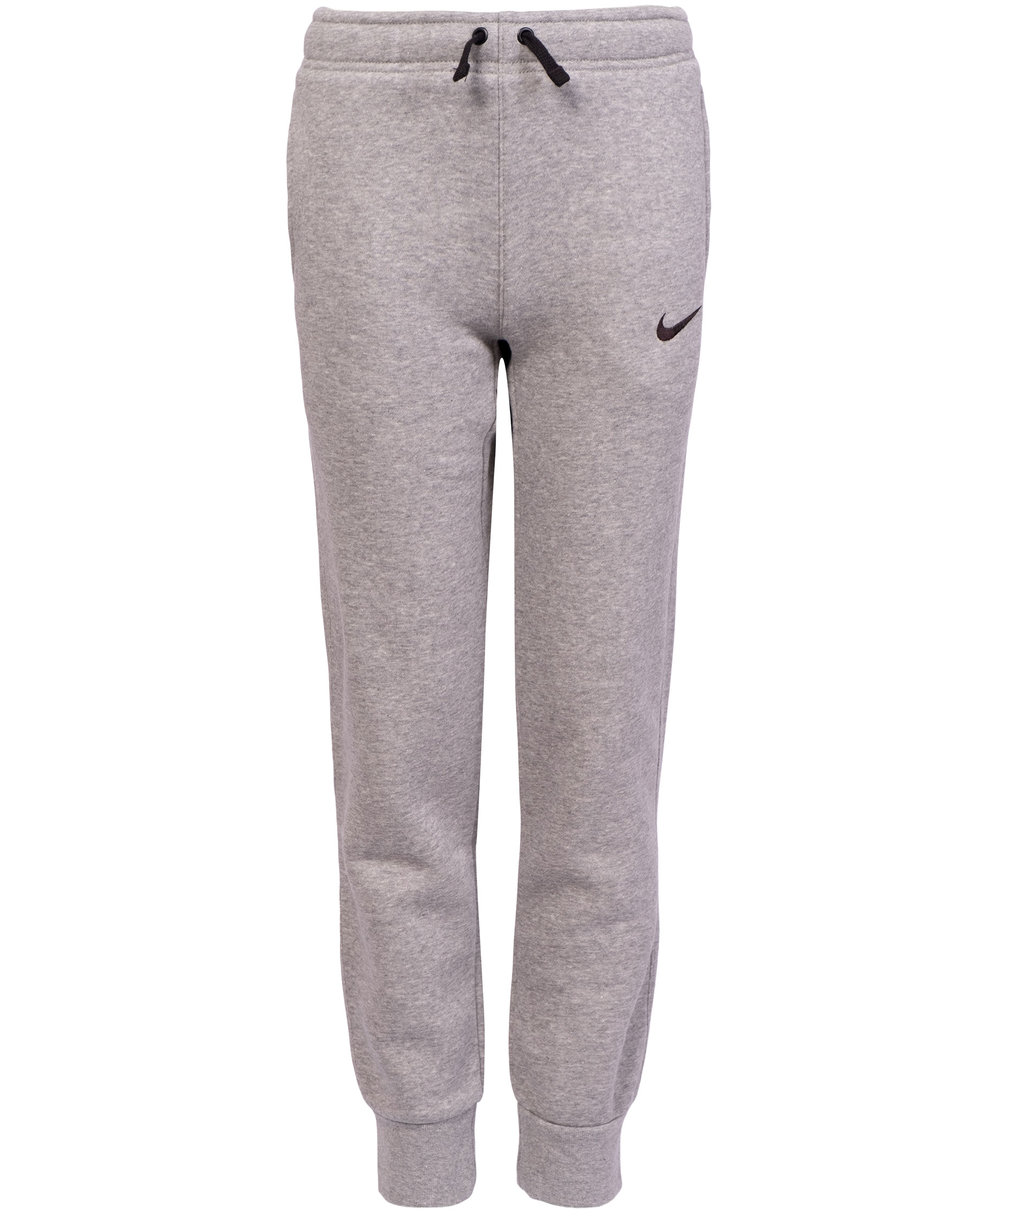 Nike Team Club Hose für Kinder, Dark Grey Heather